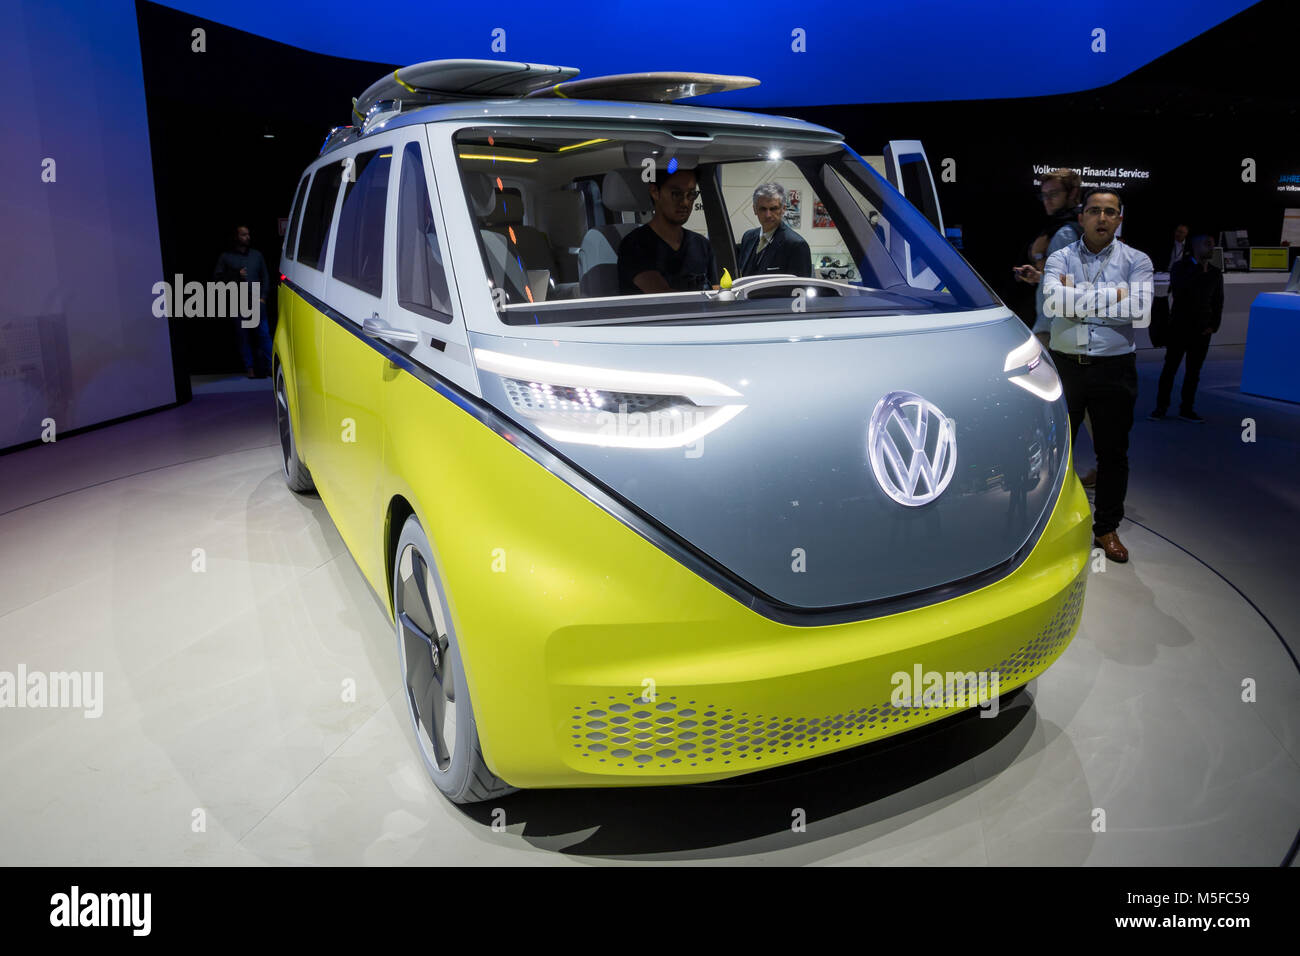 Yellow vw campervan stock photos yellow vw campervan for Credit auto garage volkswagen